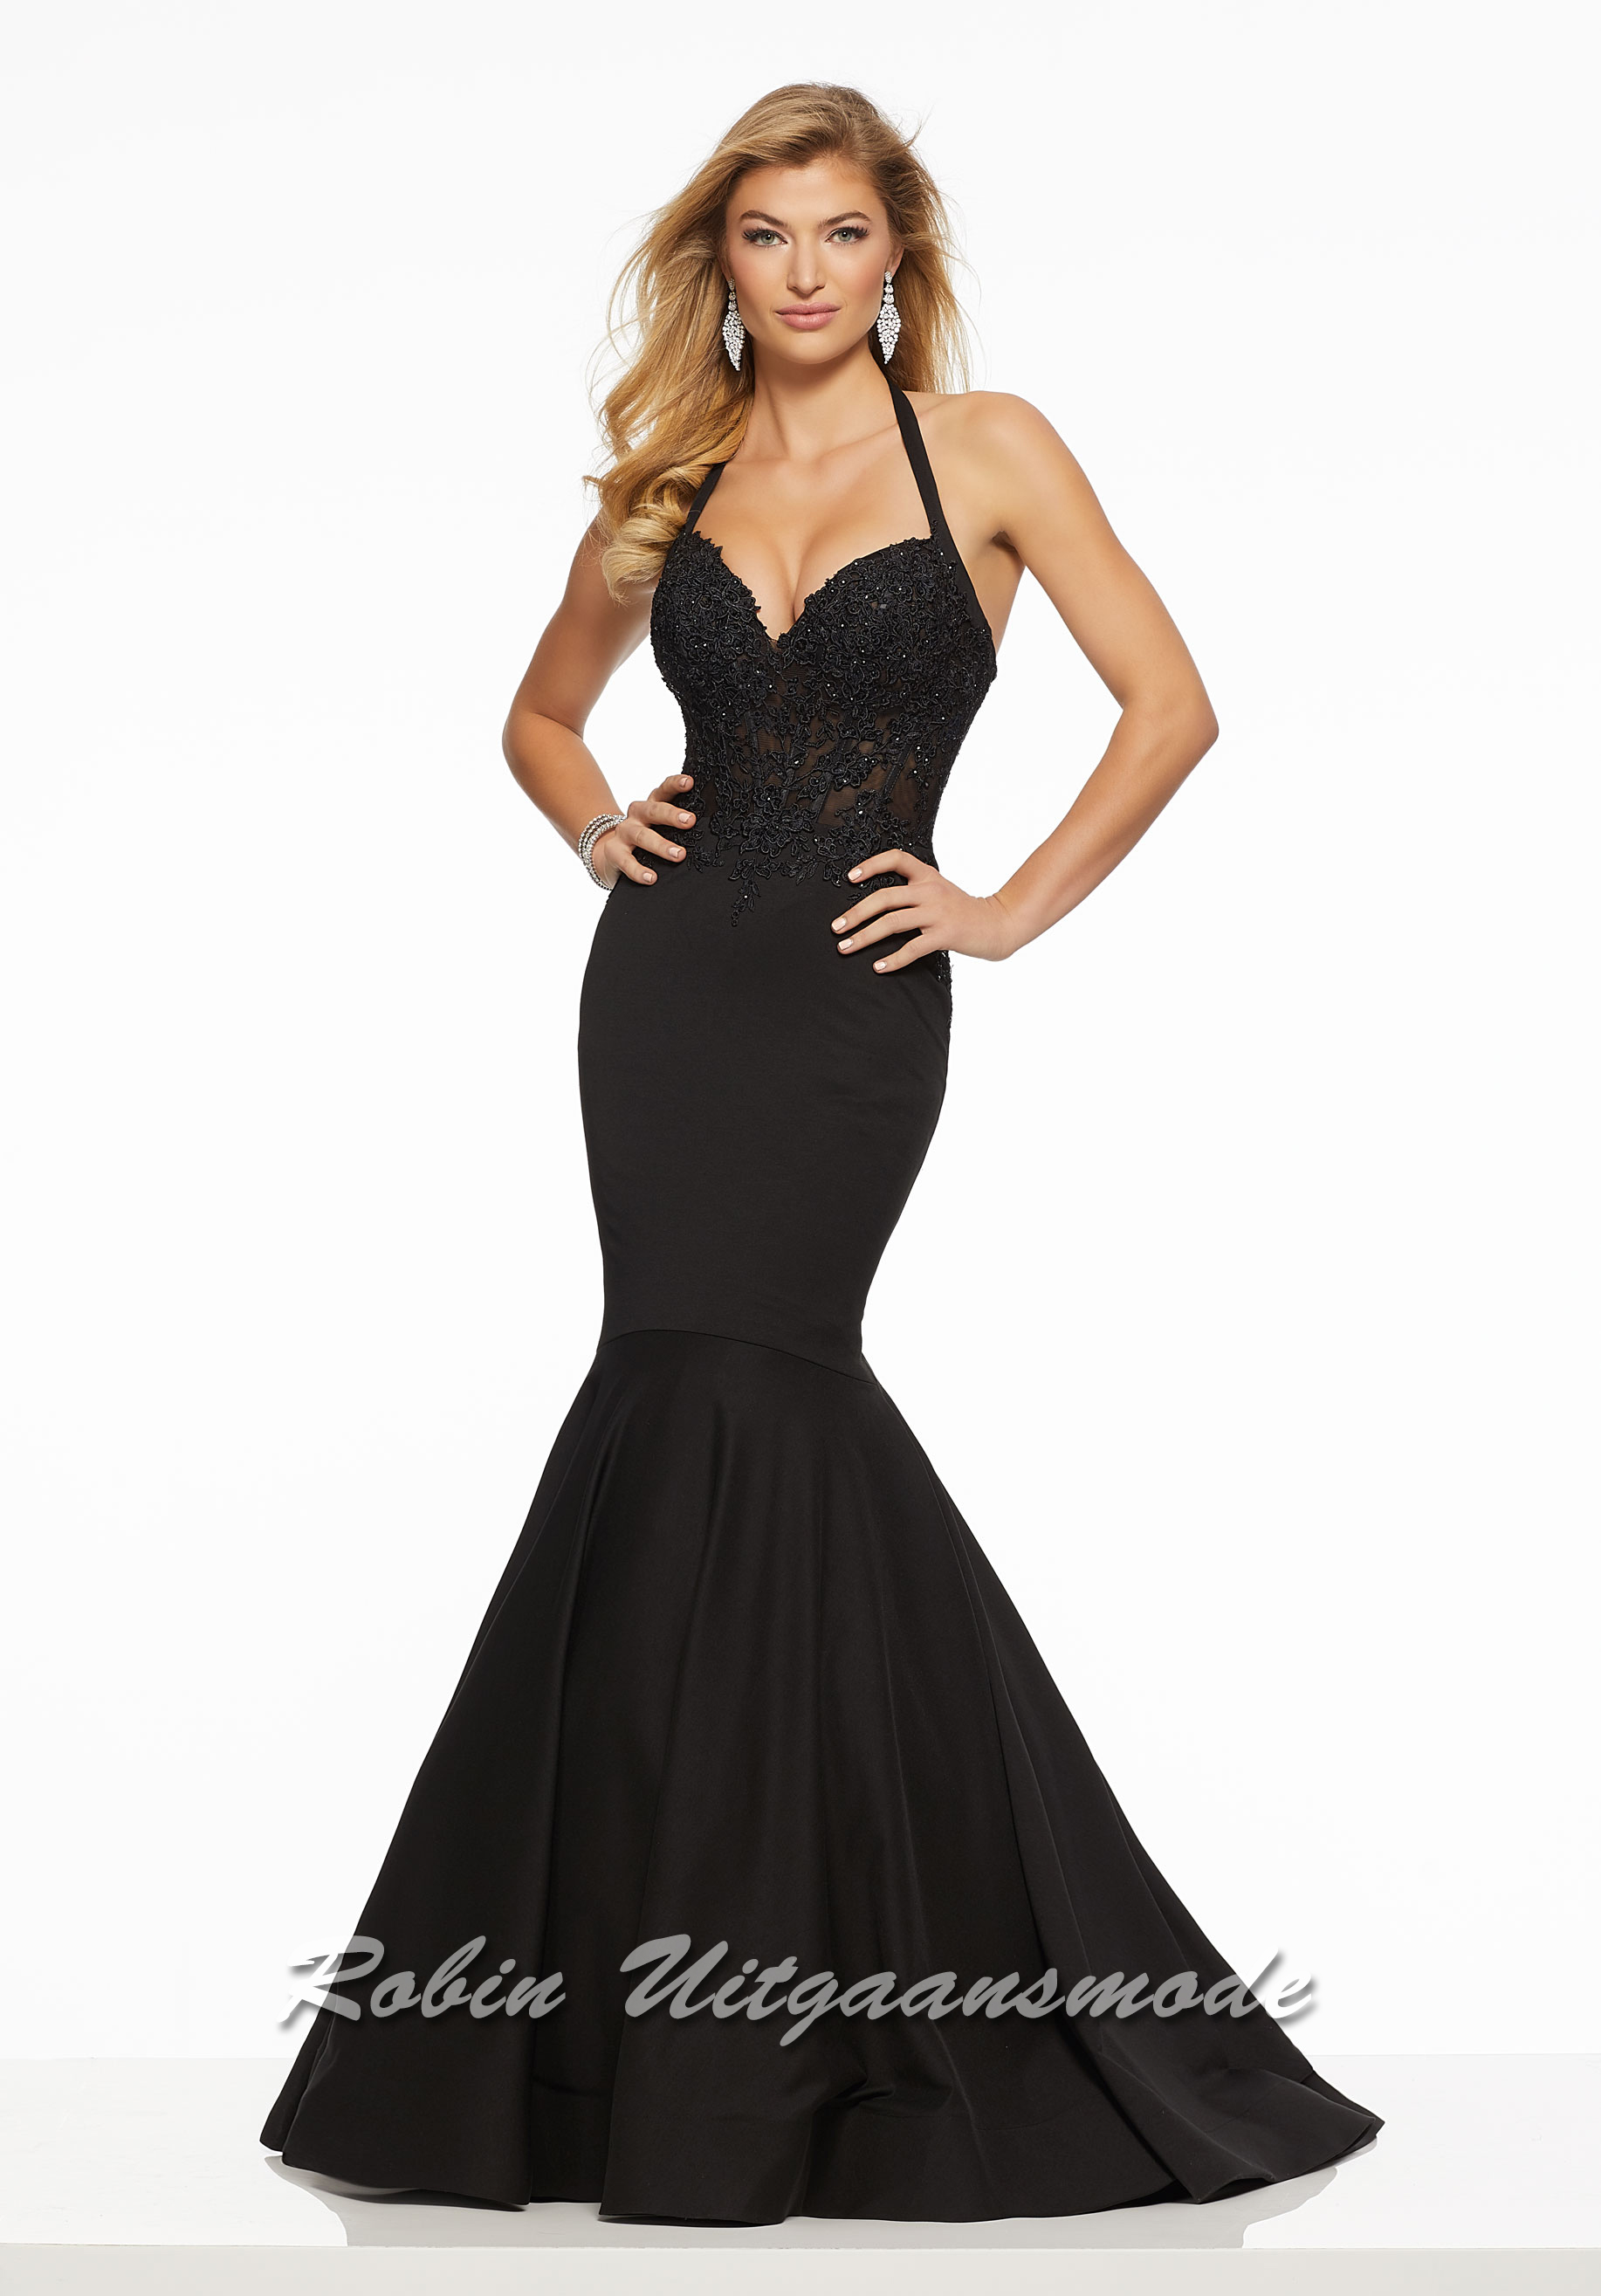 c9916b0a7e05 Black glamour prom dress in a mermaid model, the tight bodice with halter  straps is